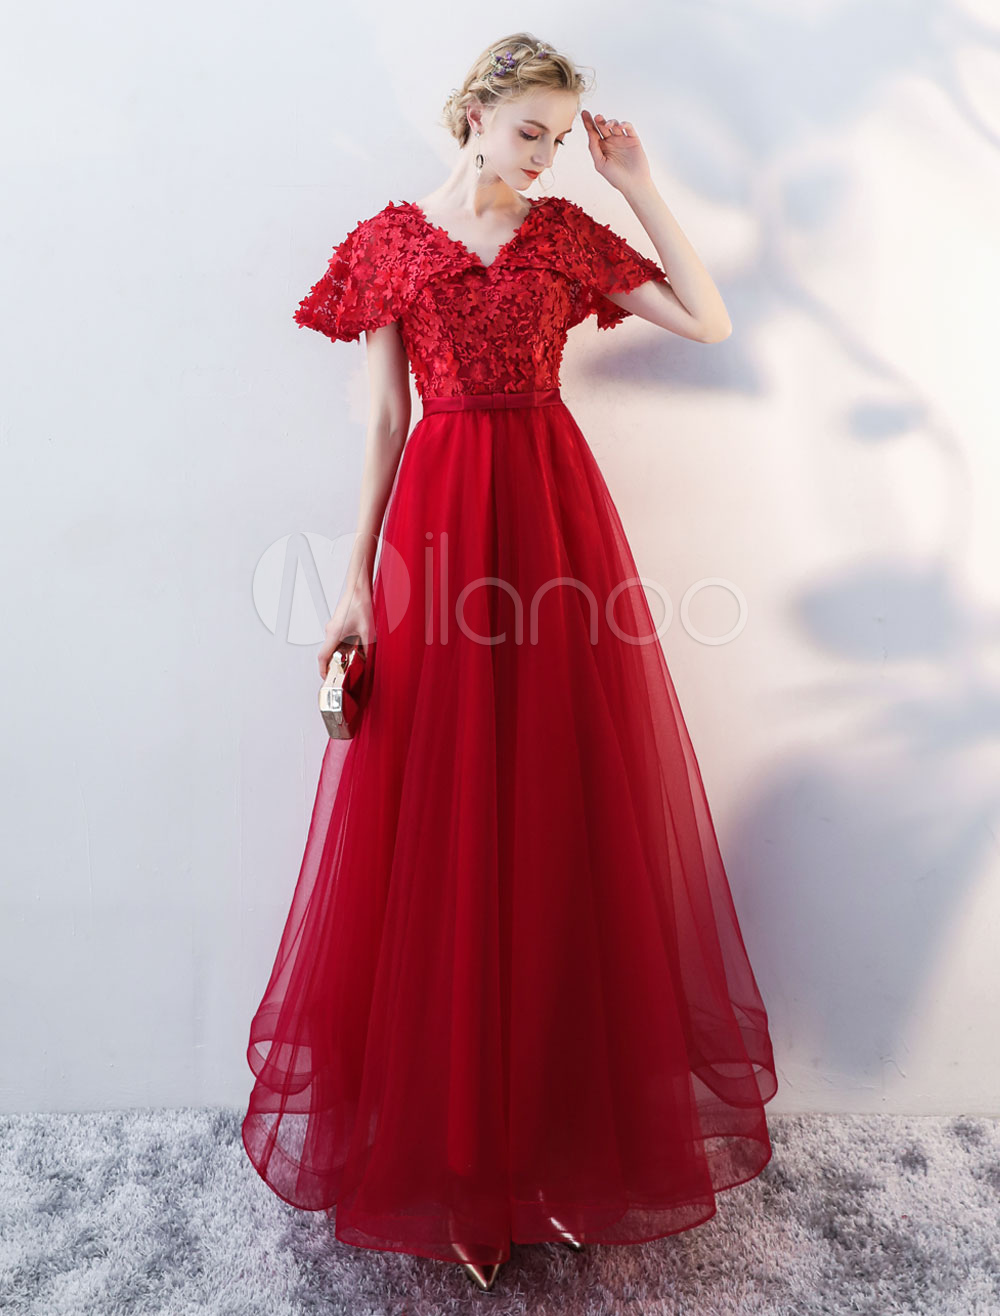 Buy Burgundy Prom Dresses Long Tulle Lace Short Sleeve Applique Floor Length Occasion Dress for $118.79 in Milanoo store